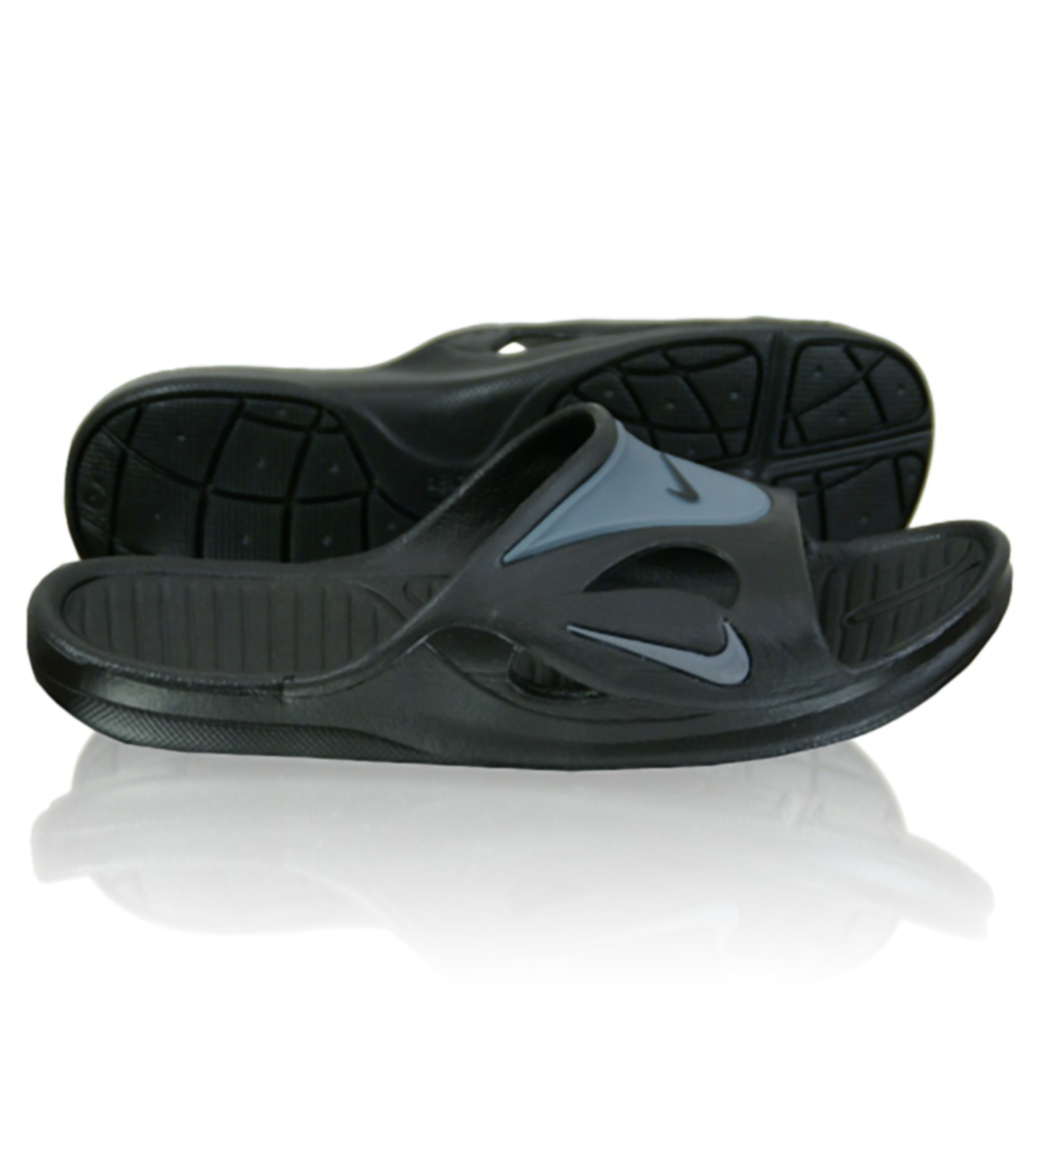 79b24ac4ce5c Nike Swim Men s First String Slide Sandals at SwimOutlet.com